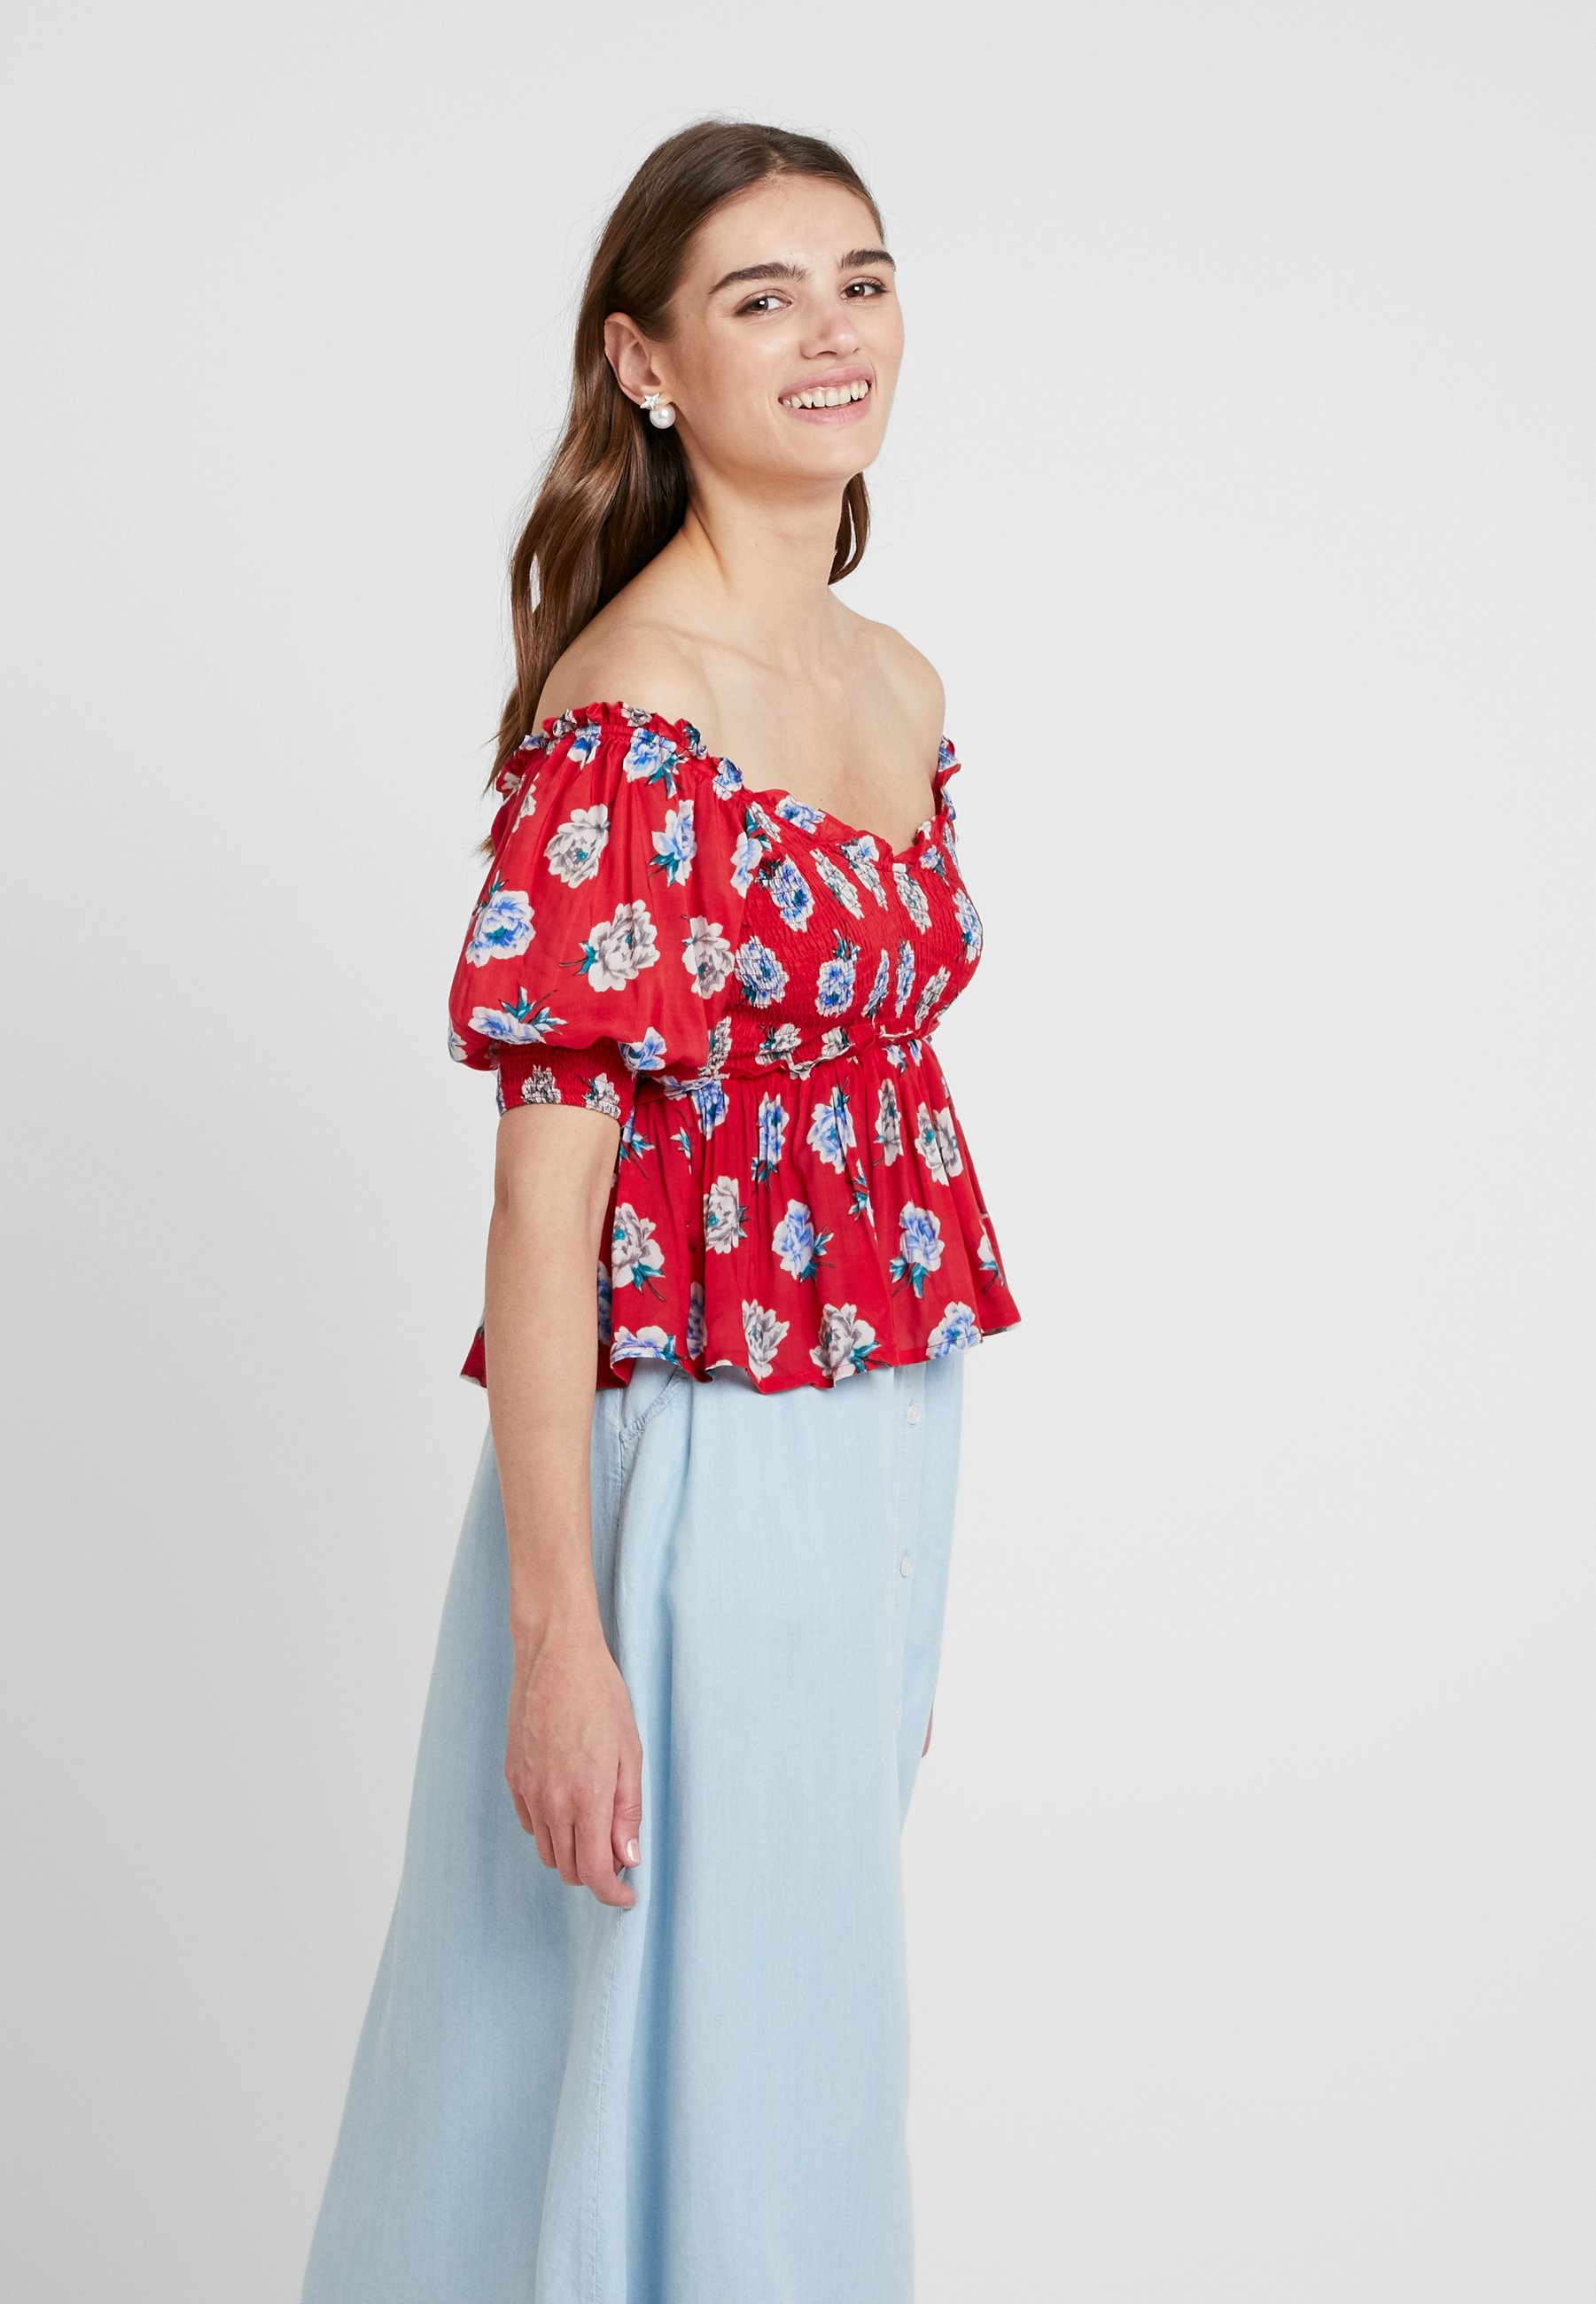 Blooming Jane ShirringBlouse Bess Sister Red odCxBreW